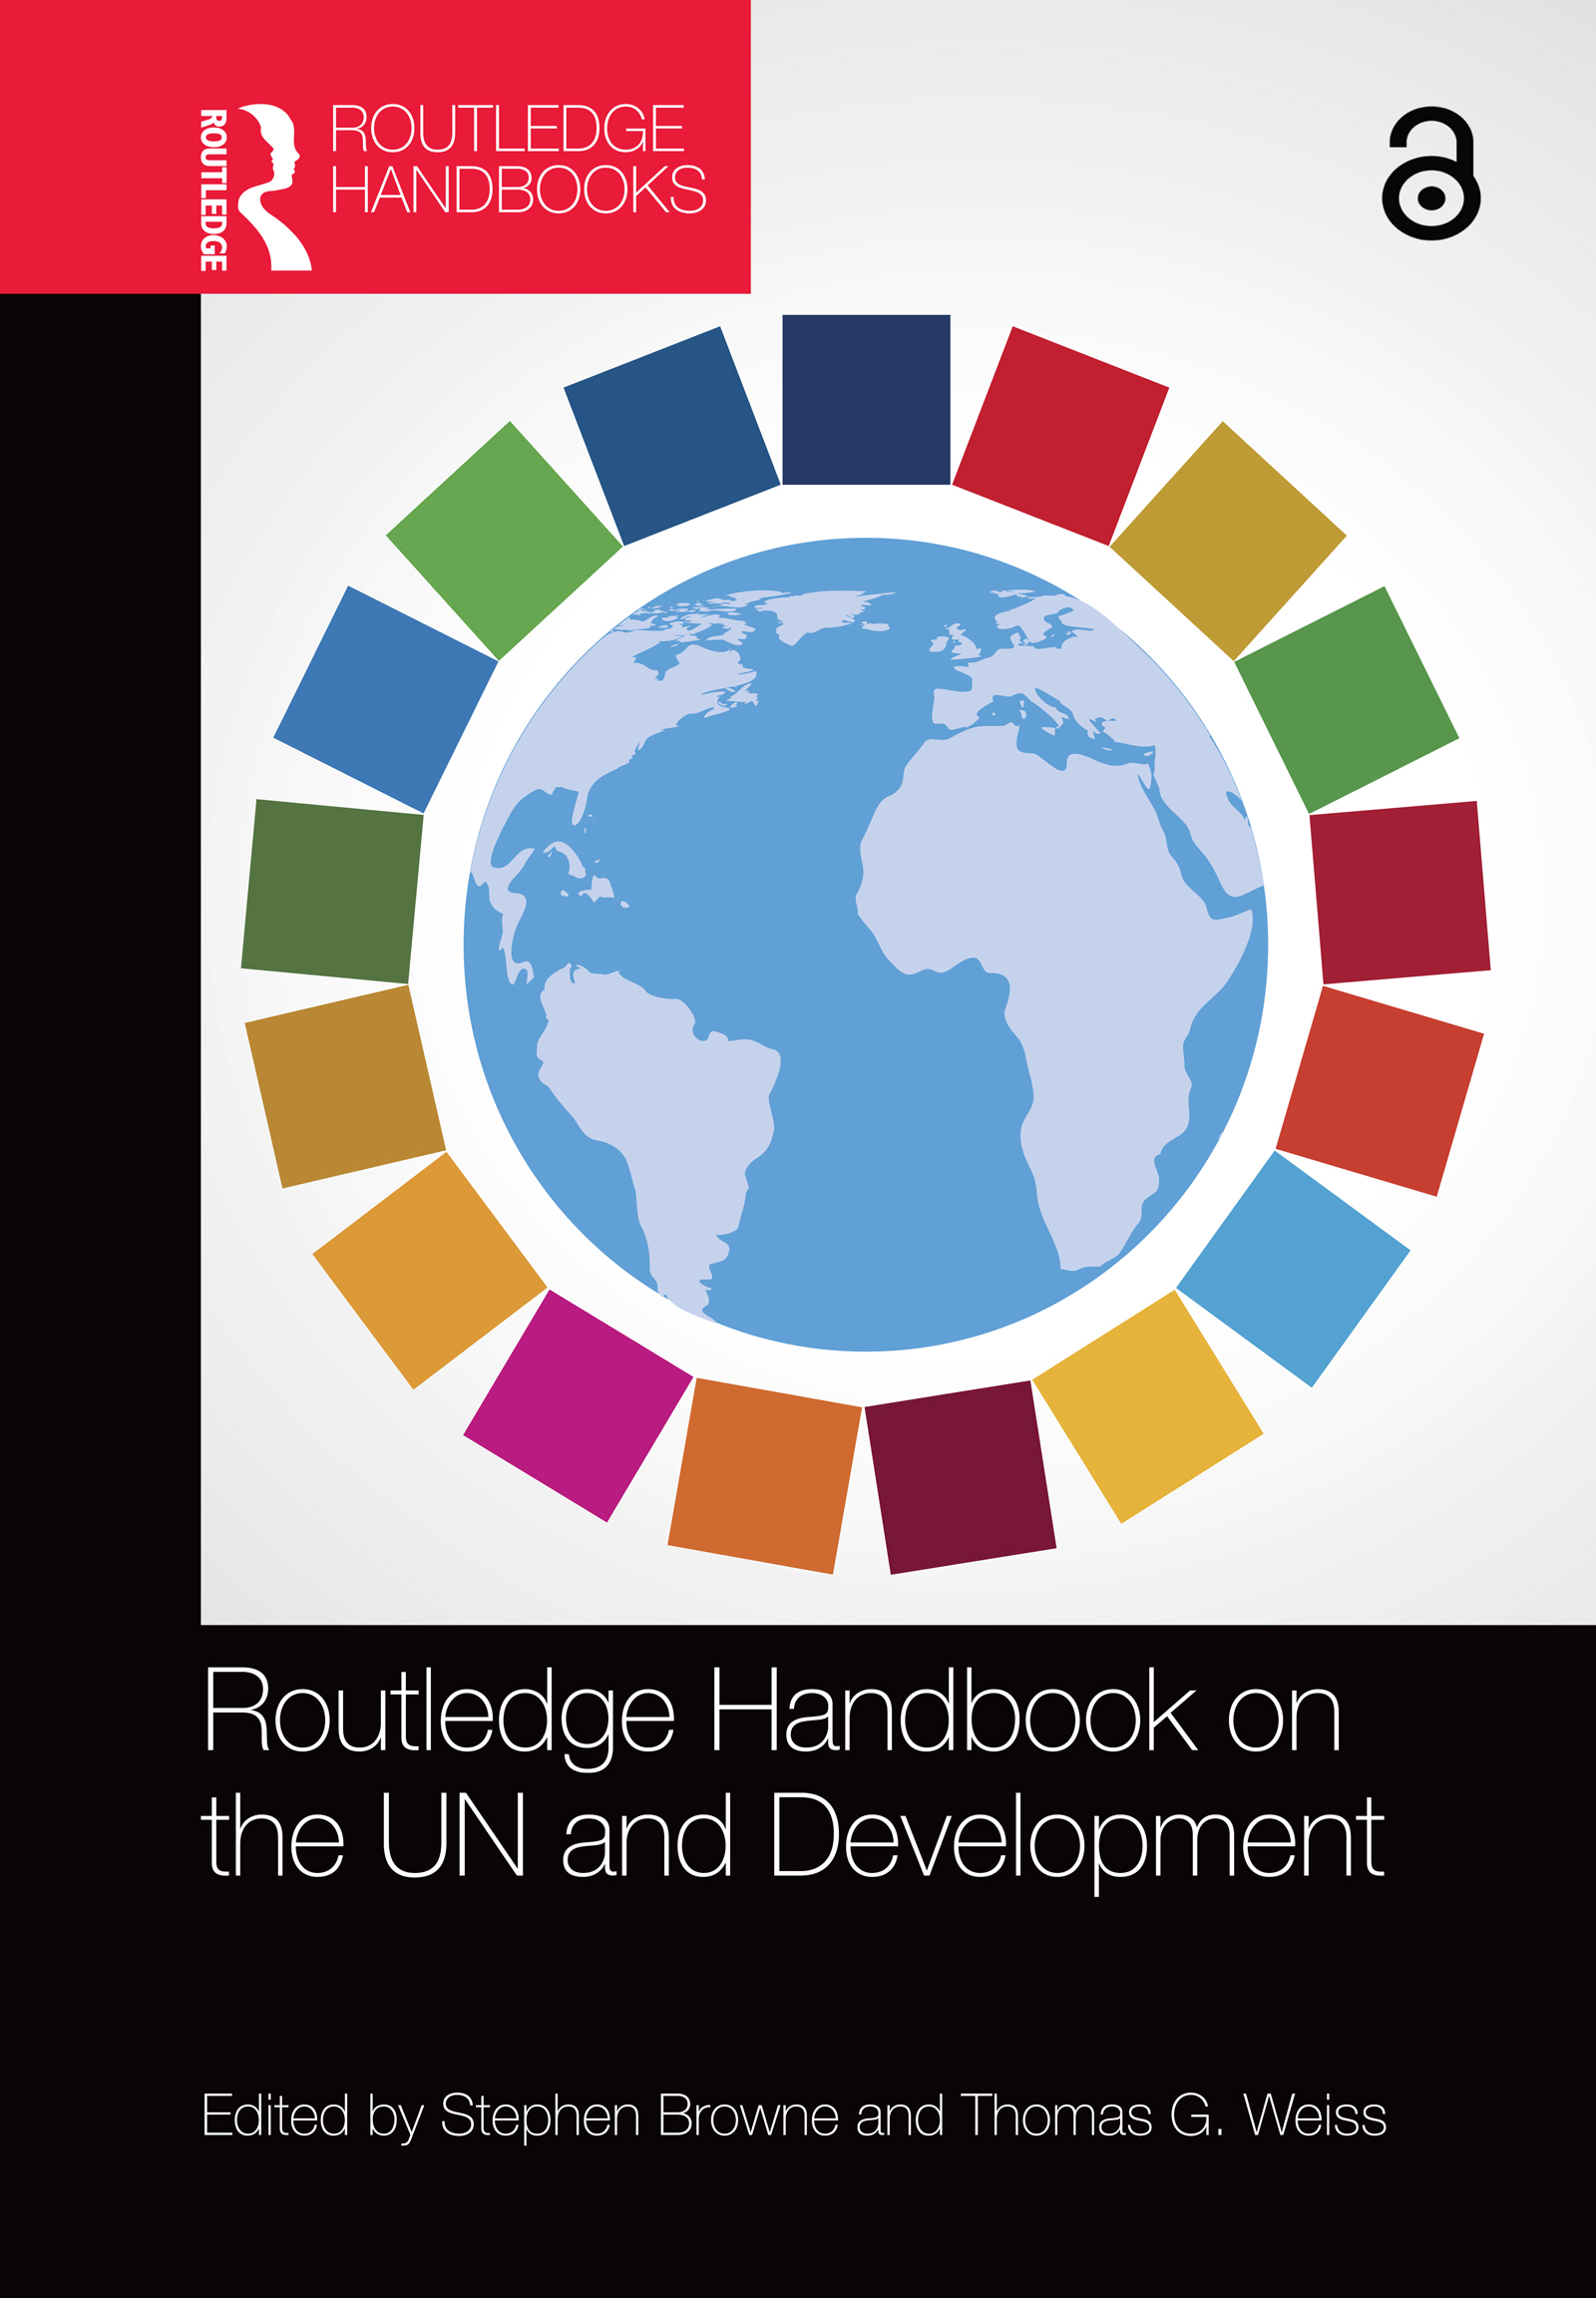 Environment and Development in the UN